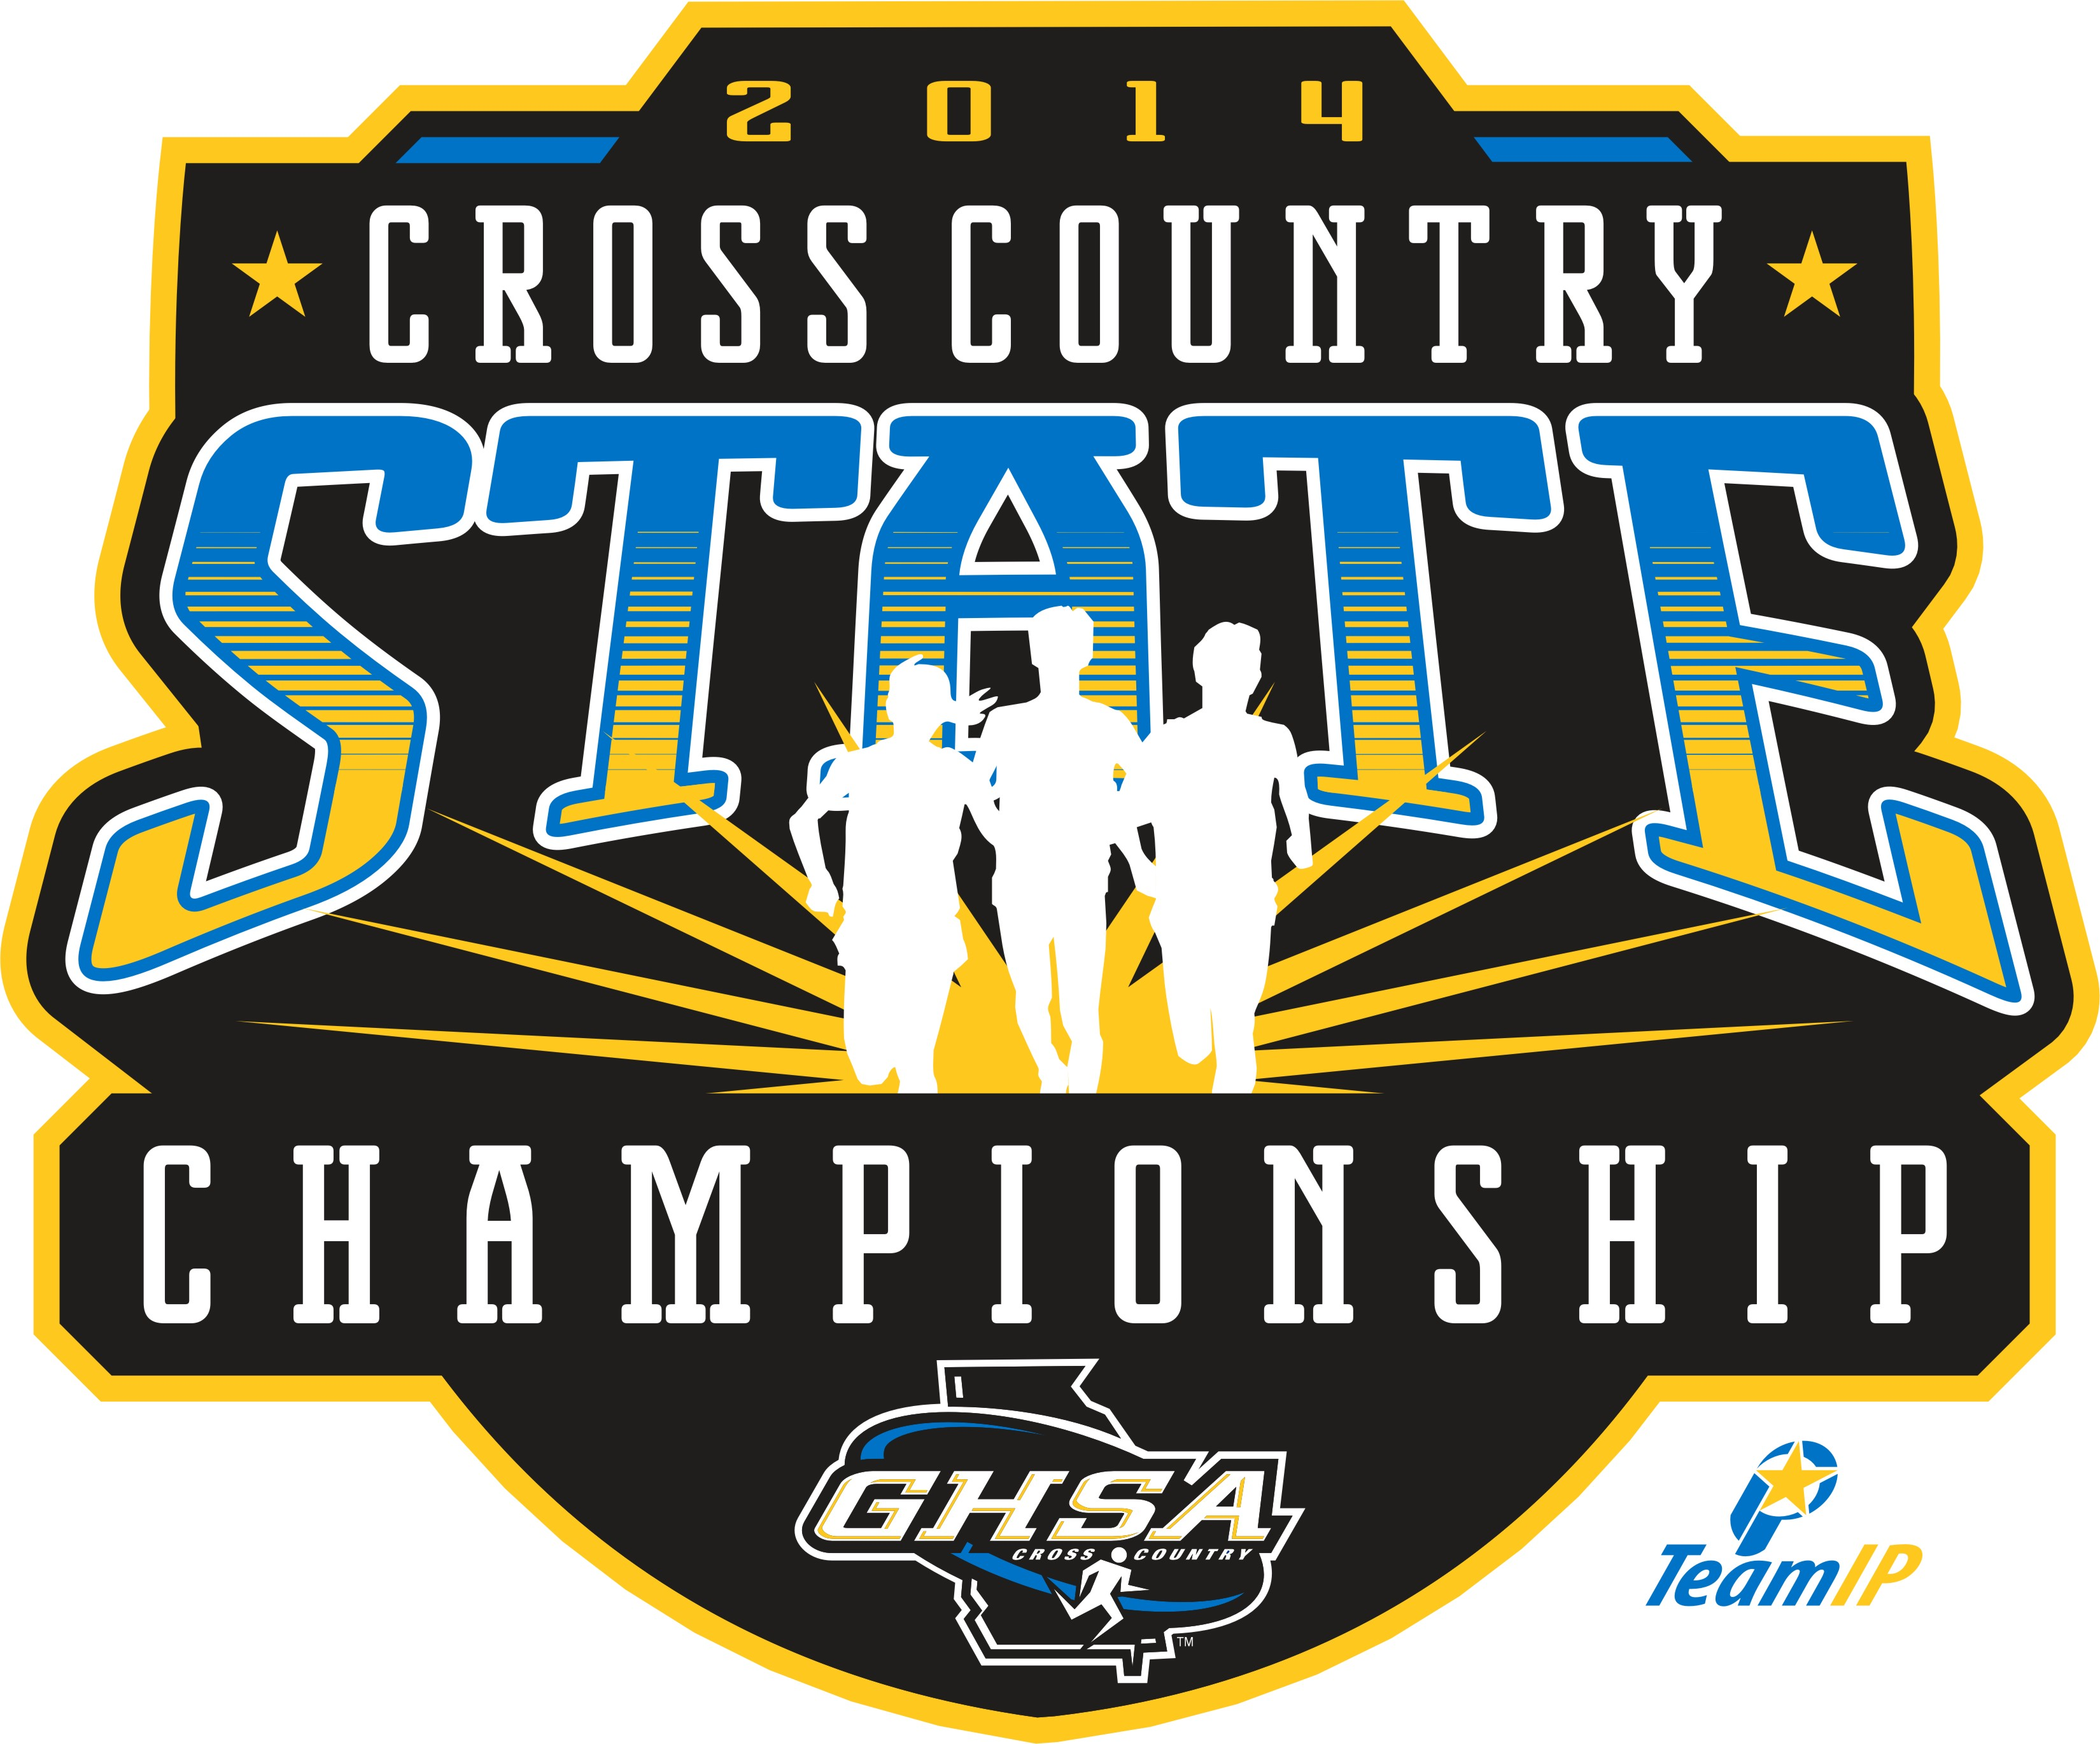 2014 state cross country meet